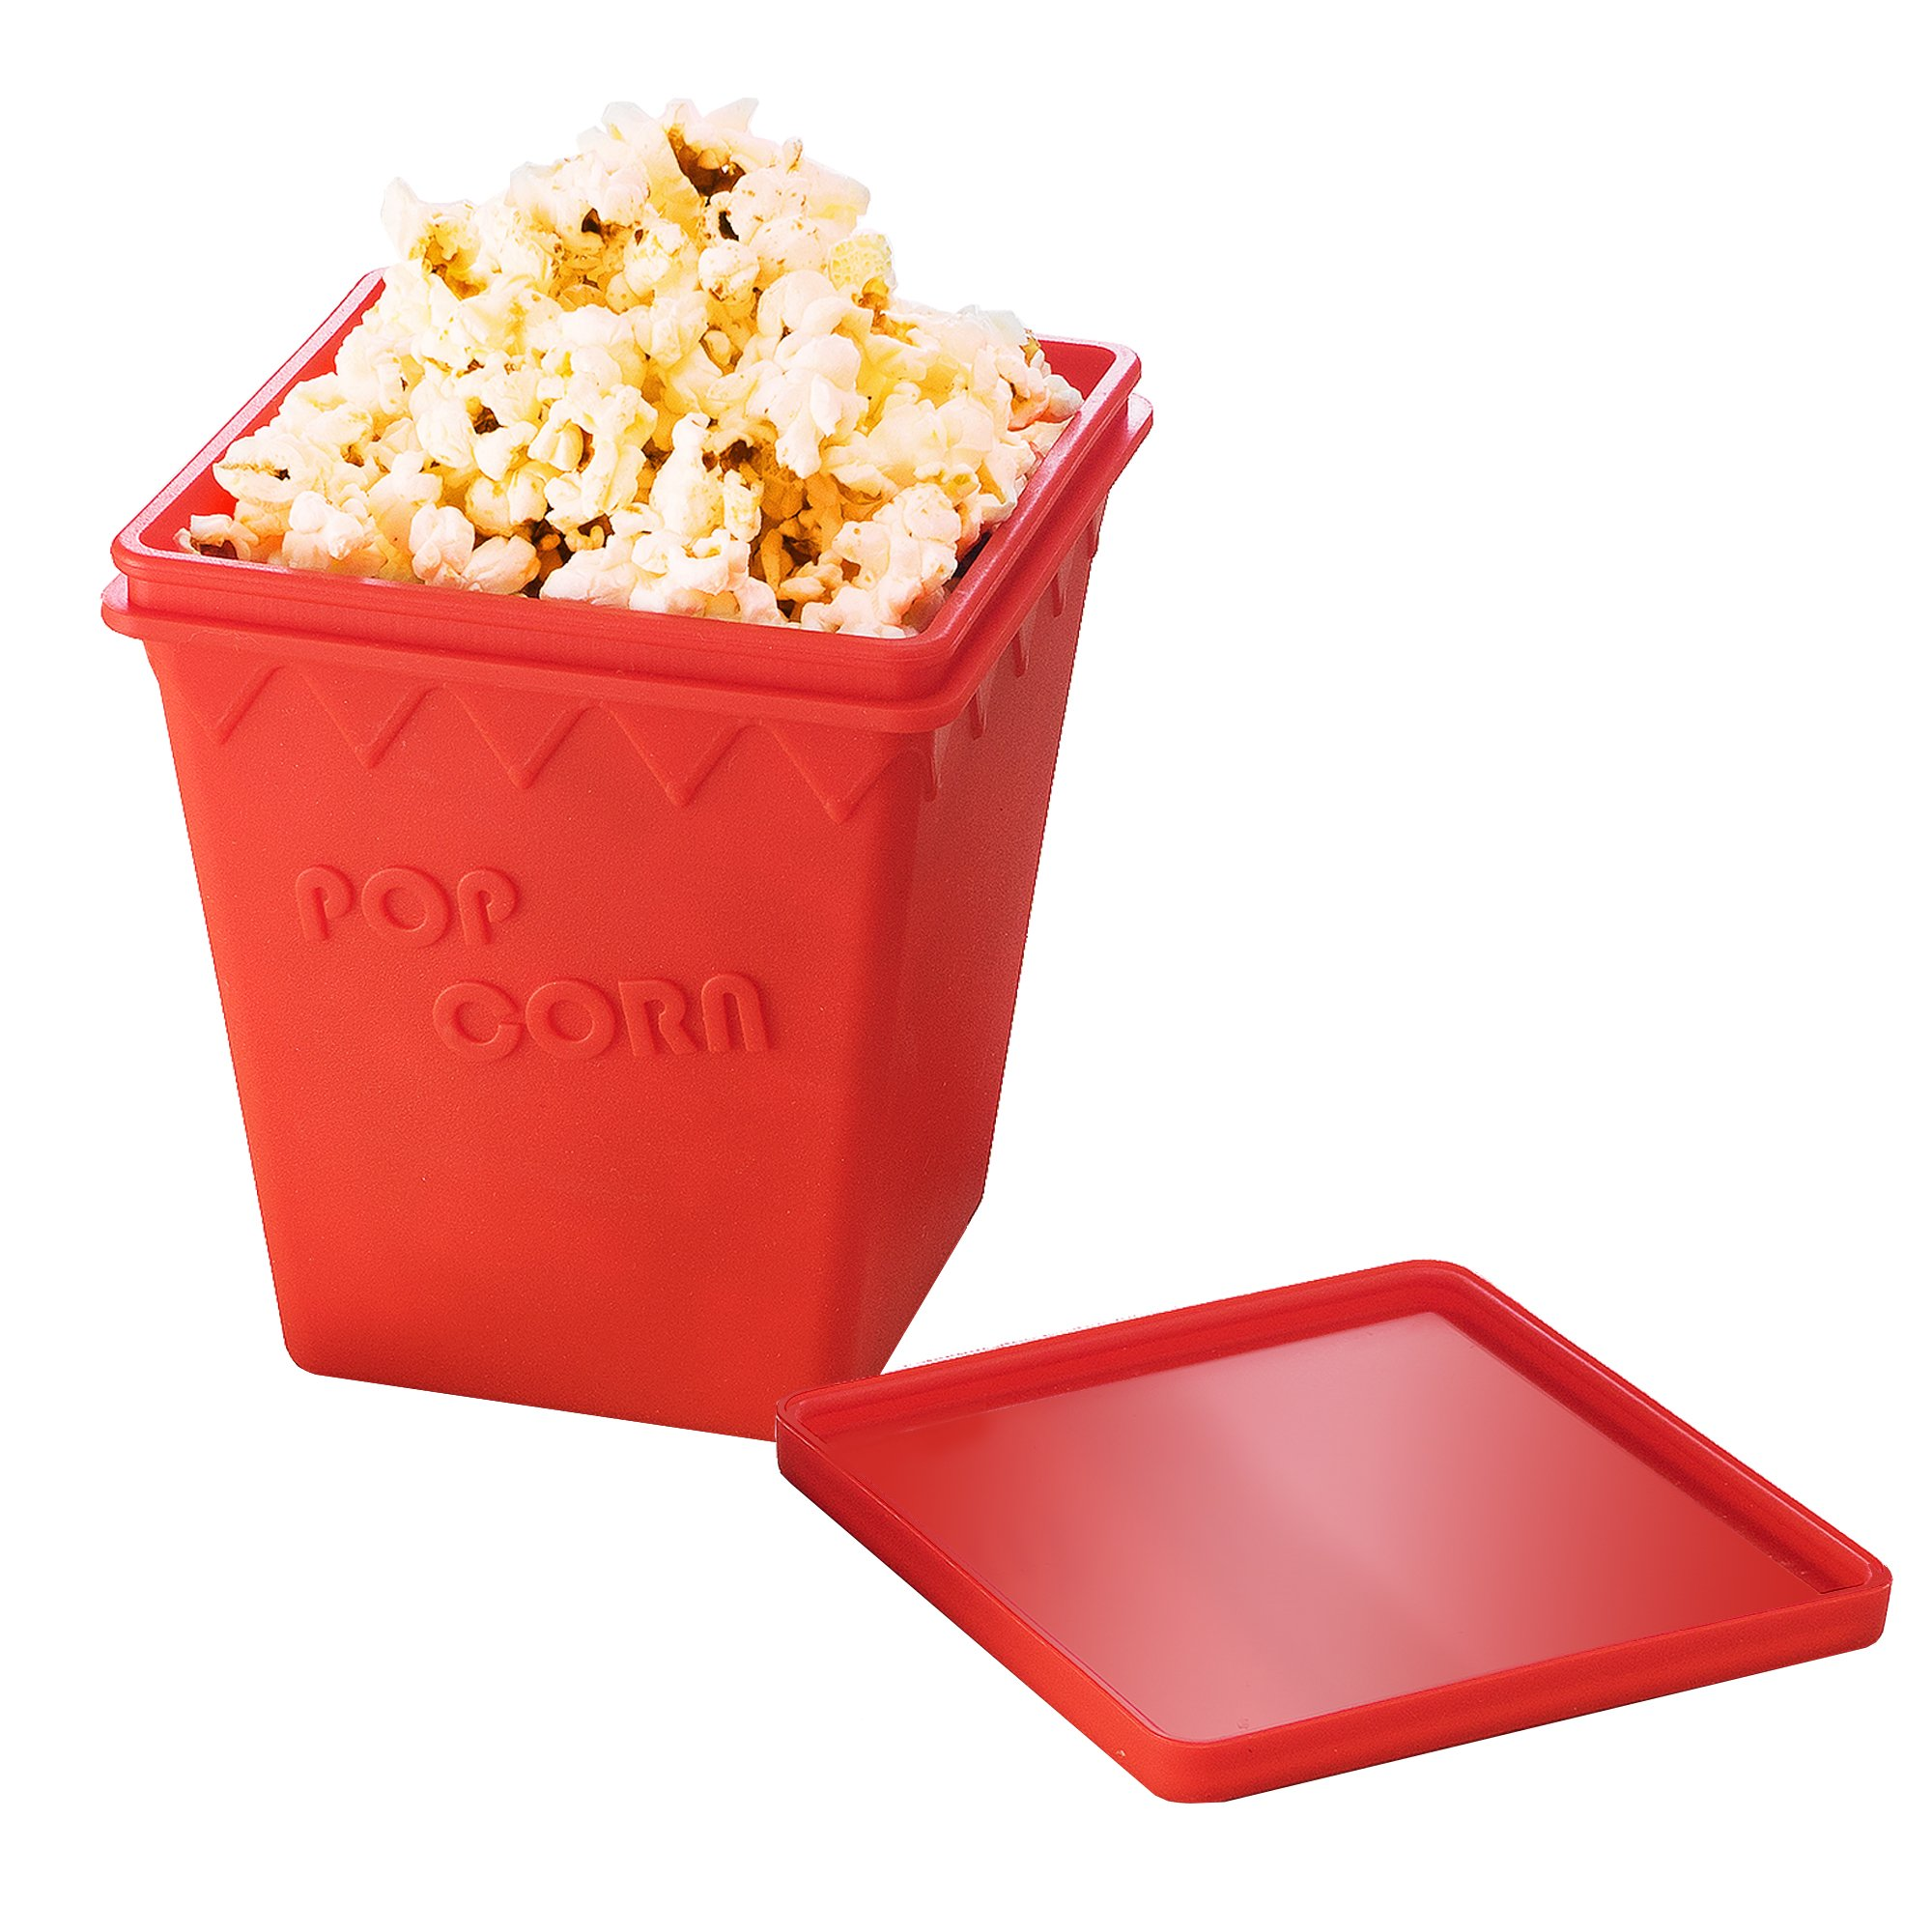 Great Northern Popcorn Silicone BPA Free Microwave Popcorn Popper Makes Healthier Popcorn